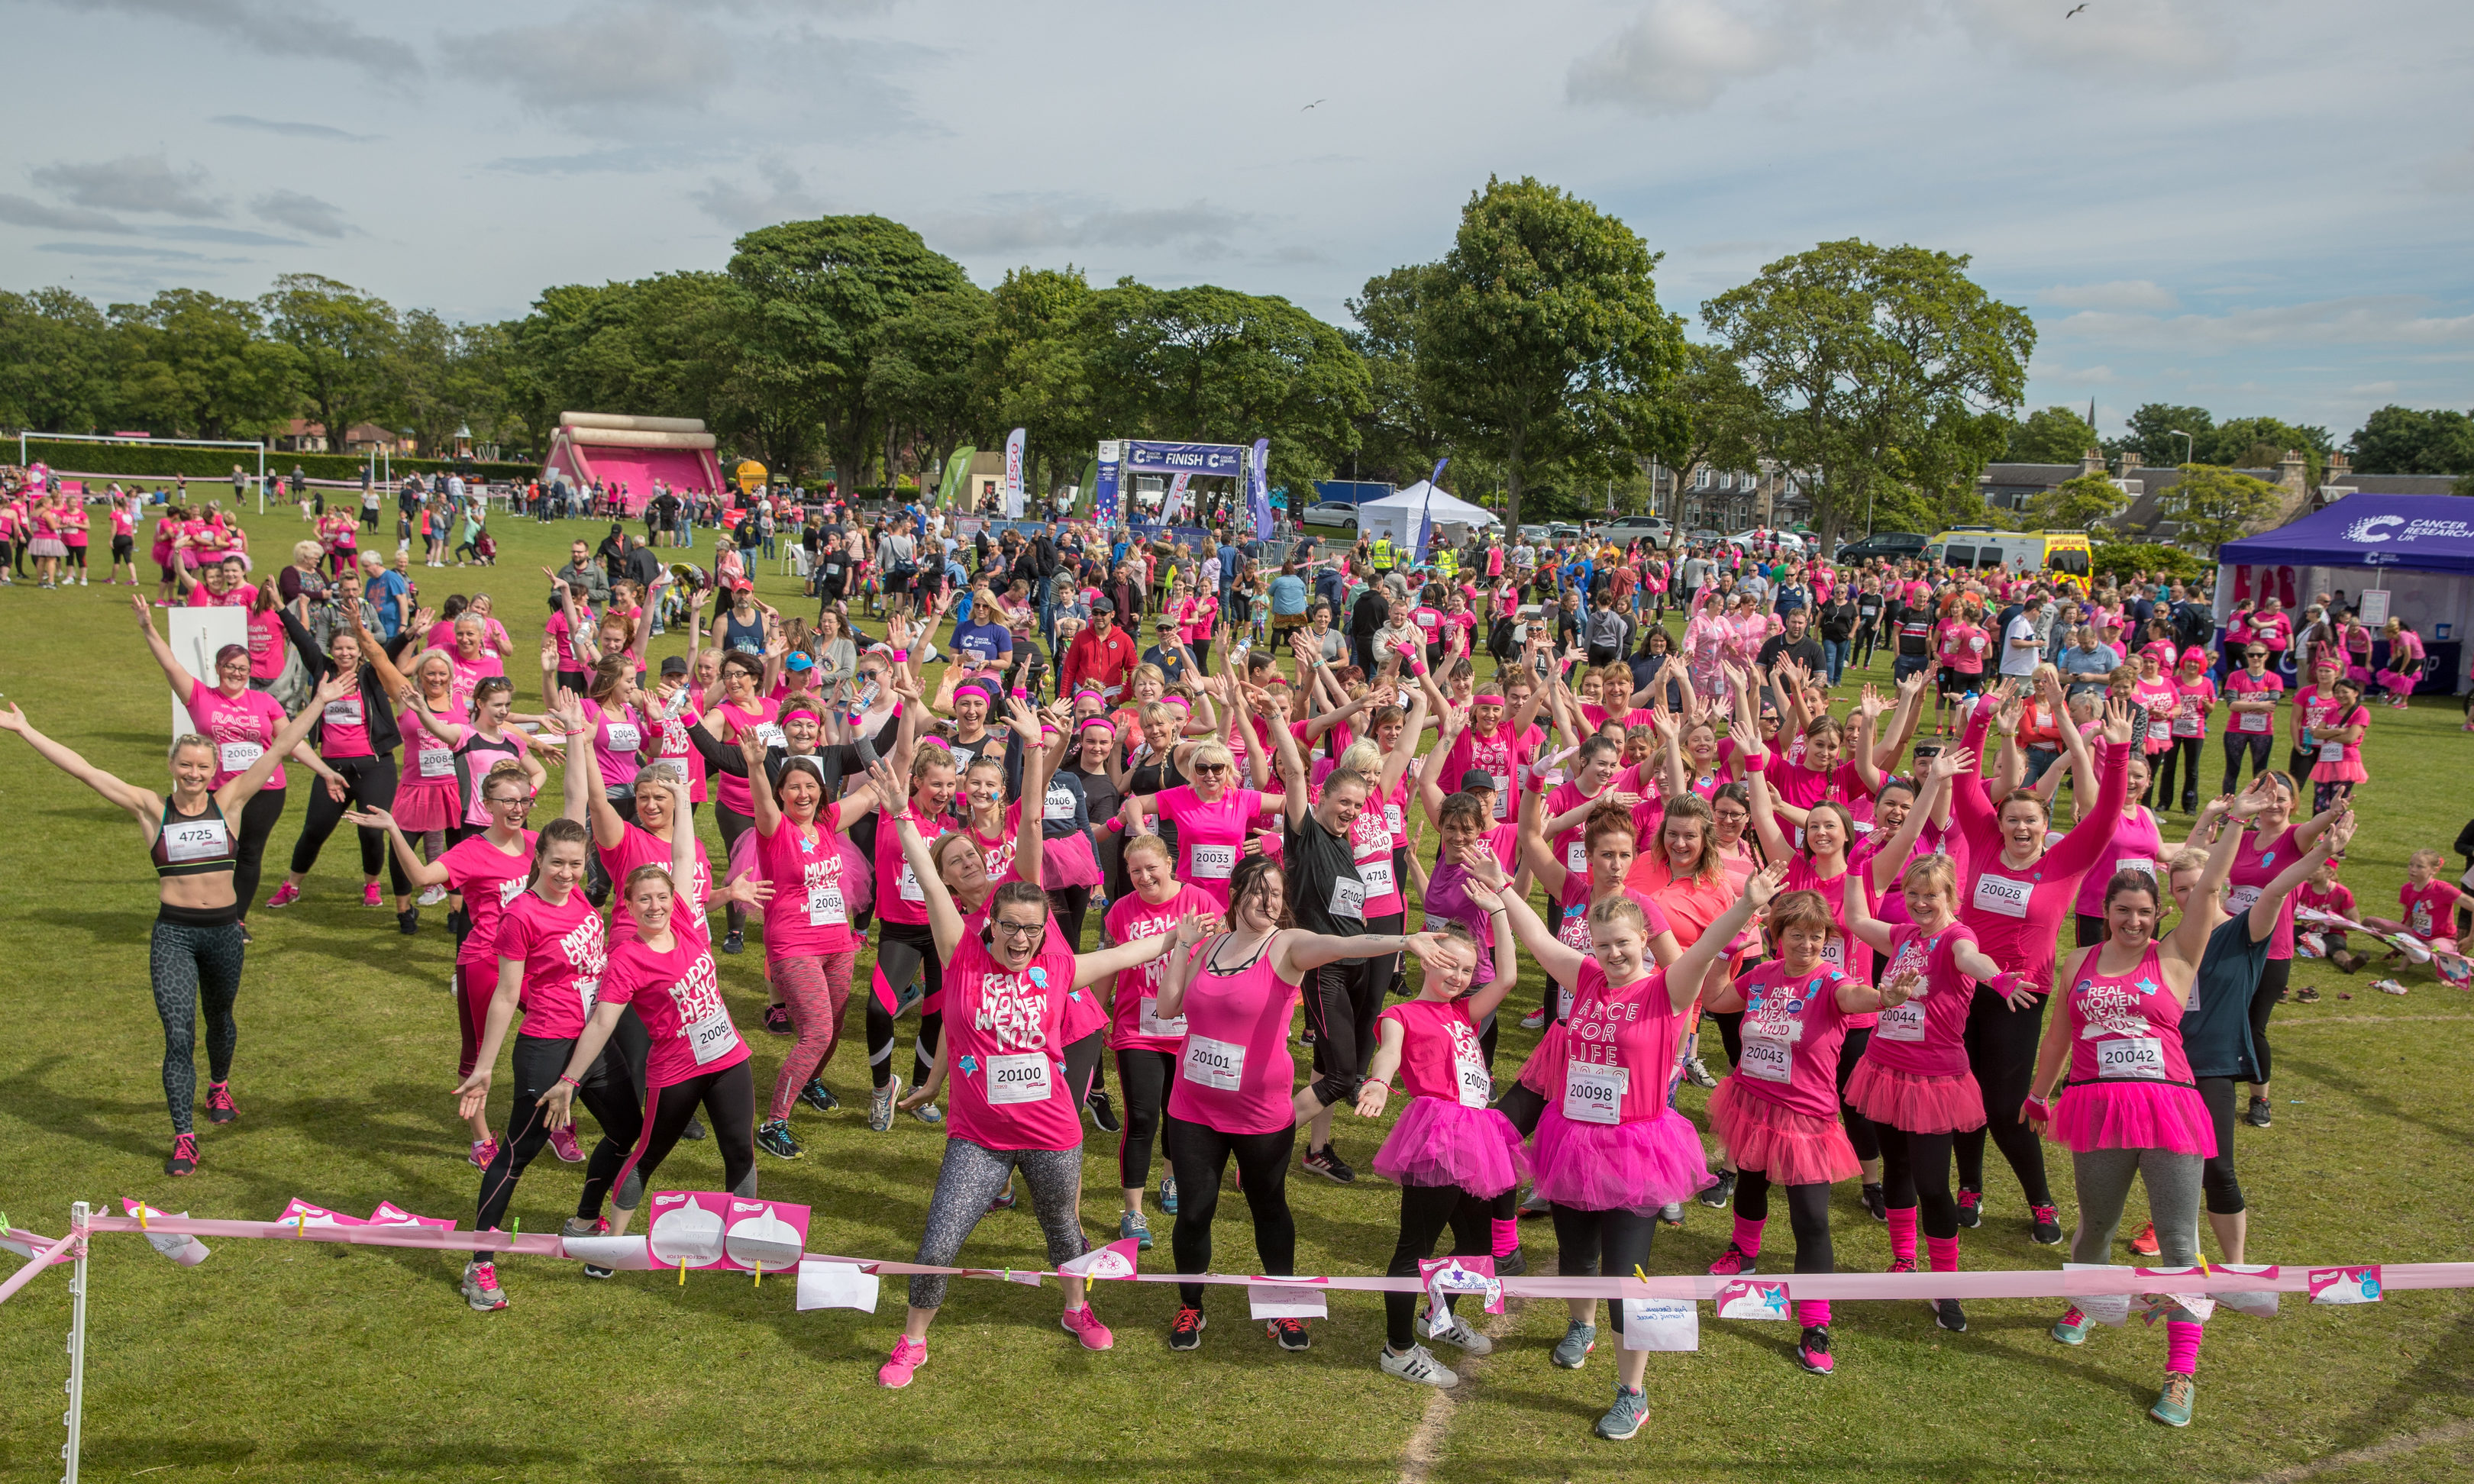 Competitors in last year's Race for Life in Kirkcaldy.